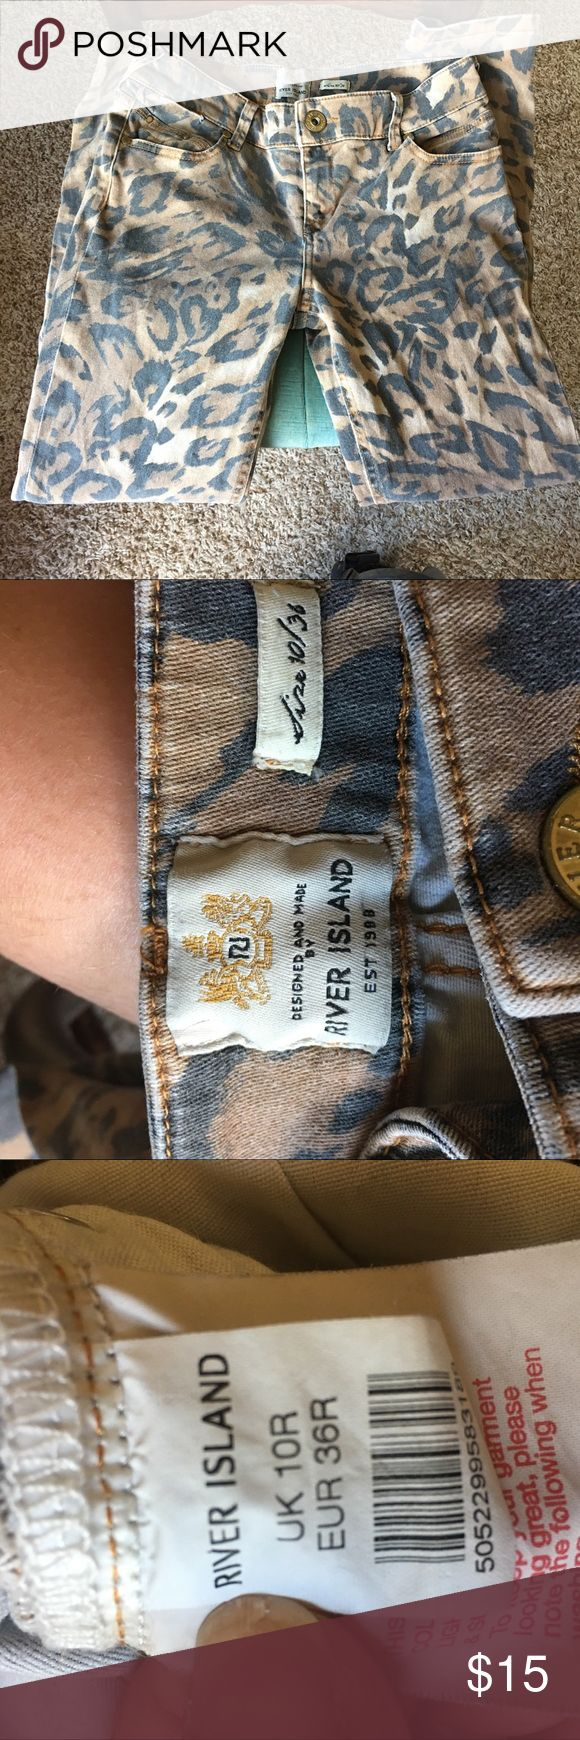 River Island leopard print jeans. UK size 10 River Island leopard print jeans. UK size 10. Quick Google search says this is equivalent to a USA size 6. River Island Jeans Straight Leg